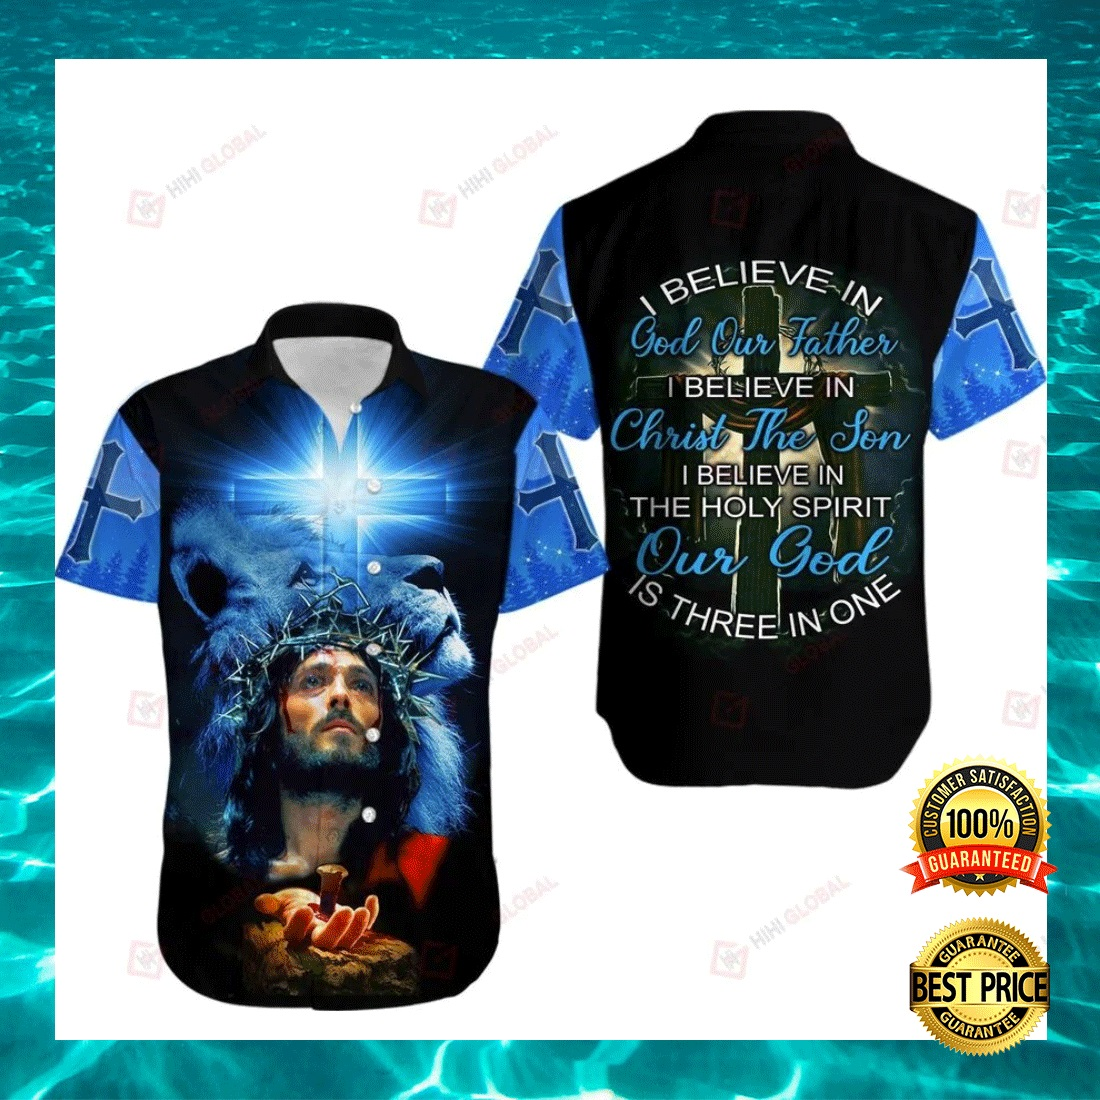 I BELIEVE IN GOD OUR FATHER I BELIEVE IN CHRIST THE SON HAWAIIAN SHIRT 4